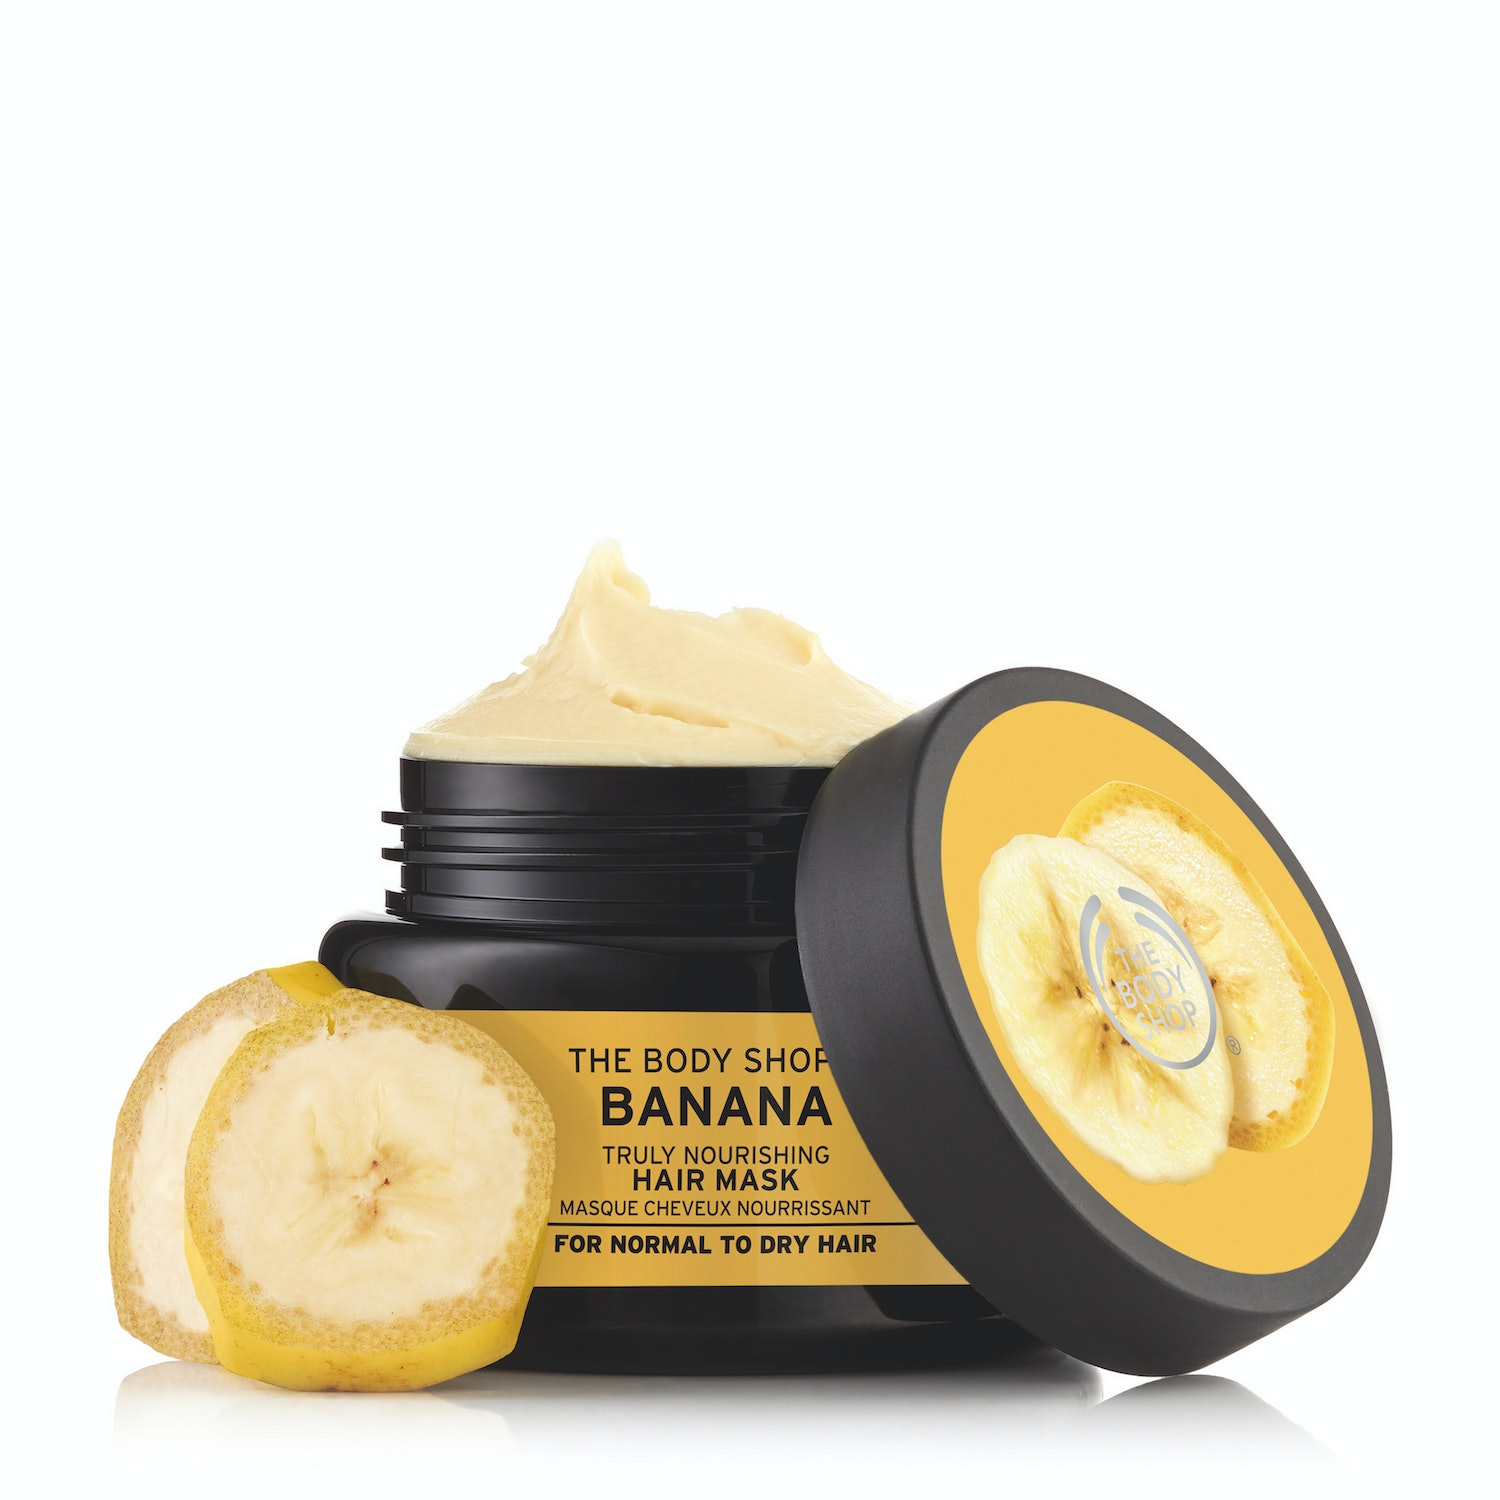 7 Banana Beauty Products That'll Take Your Skincare Routine